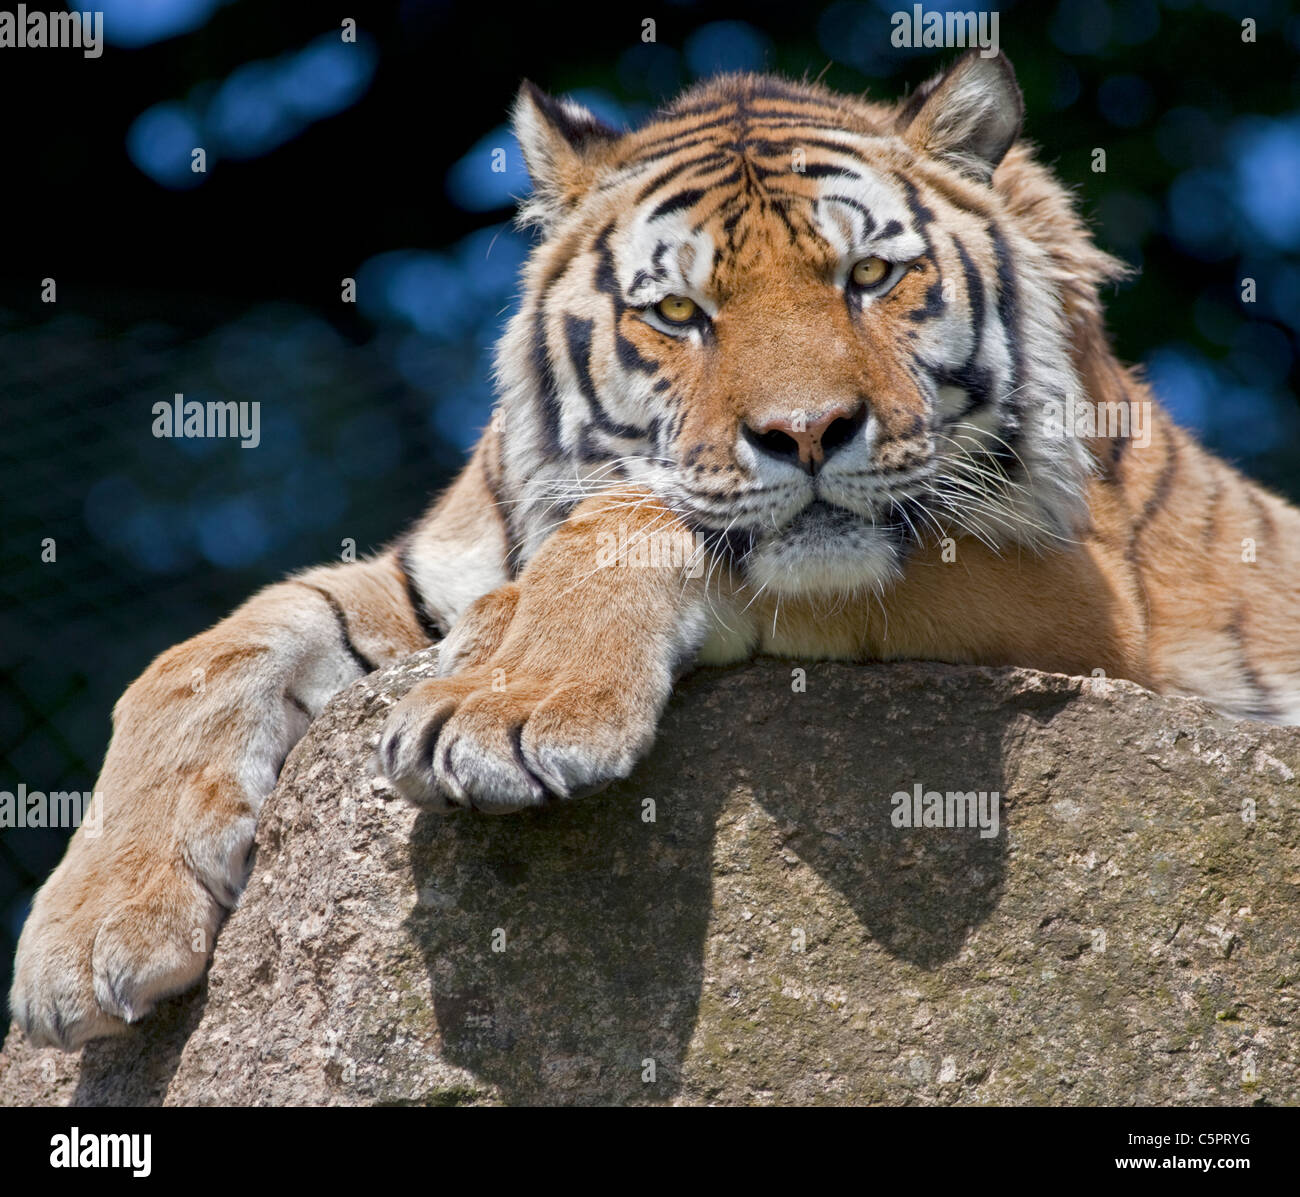 Amur Tiger/Siberian Tiger (panthera tigris altaica) Stock Photo